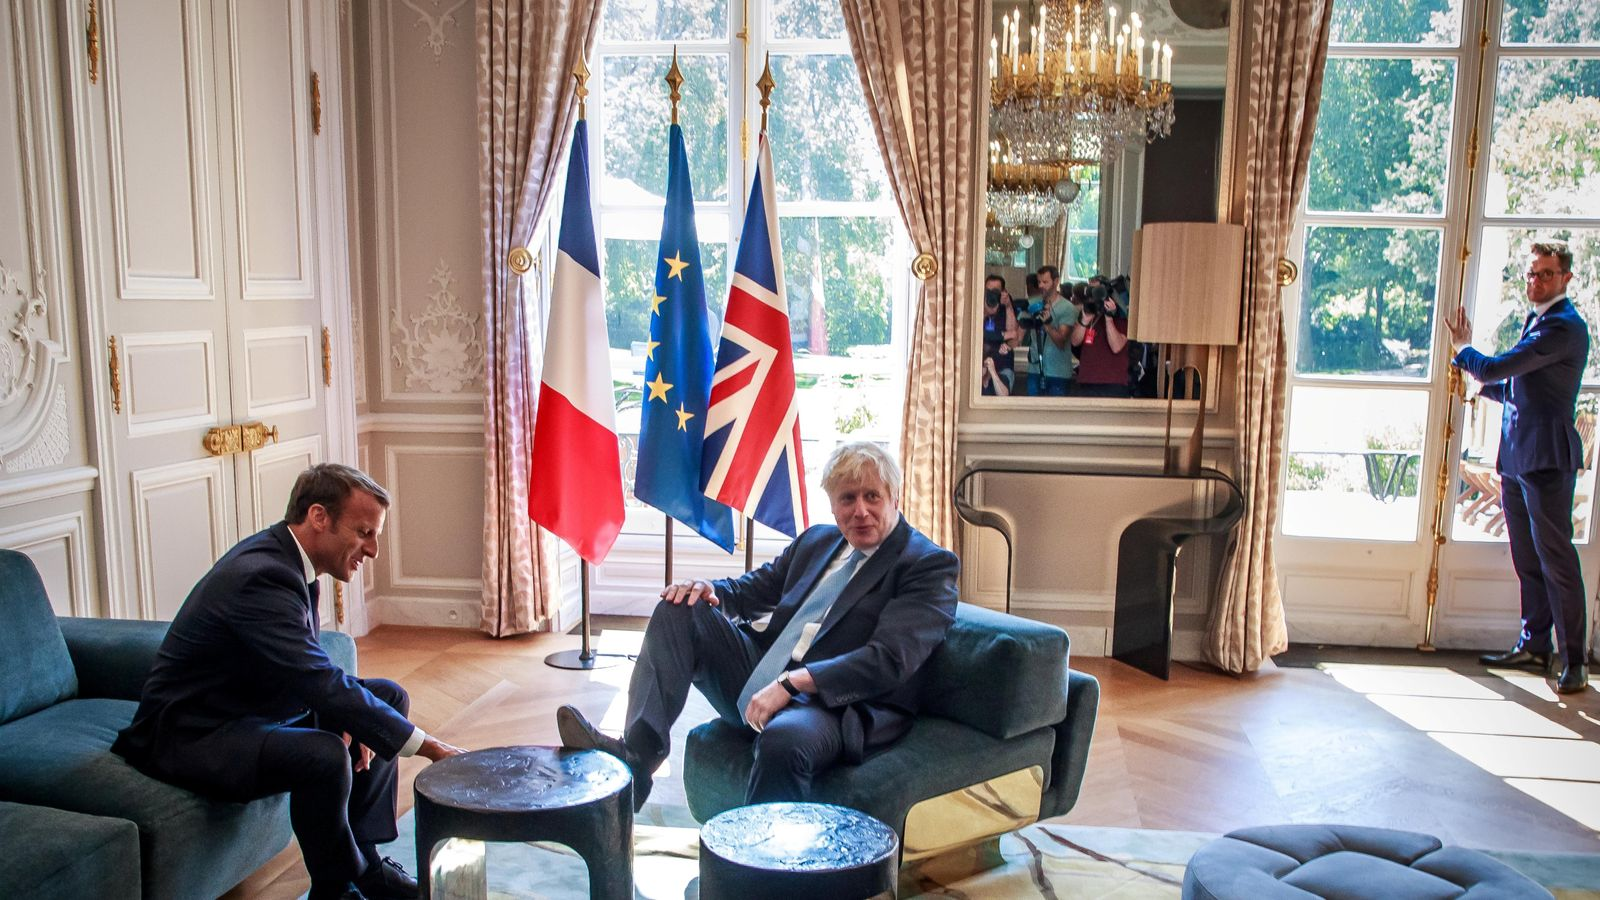 What's behind PM's foot on table at Macron's palace?